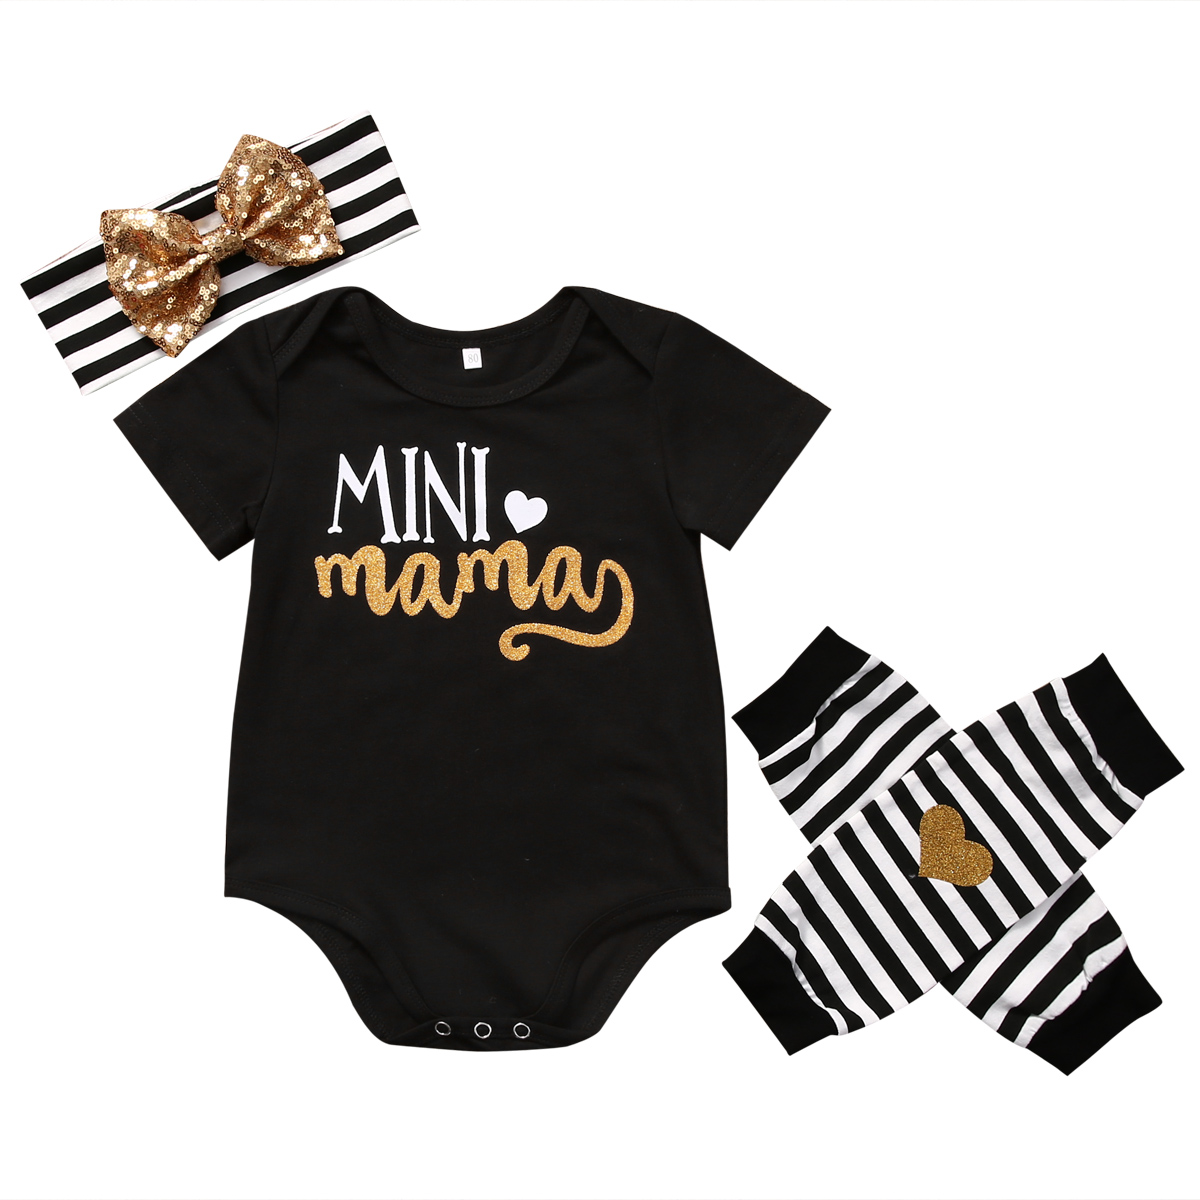 4PCS Set Newborn Baby Clothes Infant Bebes Short Sleeve Mini Mama Bodysuit Romper Headband Gold Heart Striped Leg Warmer Outfit pink newborn infant baby girls clothes short sleeve bodysuit striped leg warmers headband 3pcs outfit bebek clothing set 0 18m